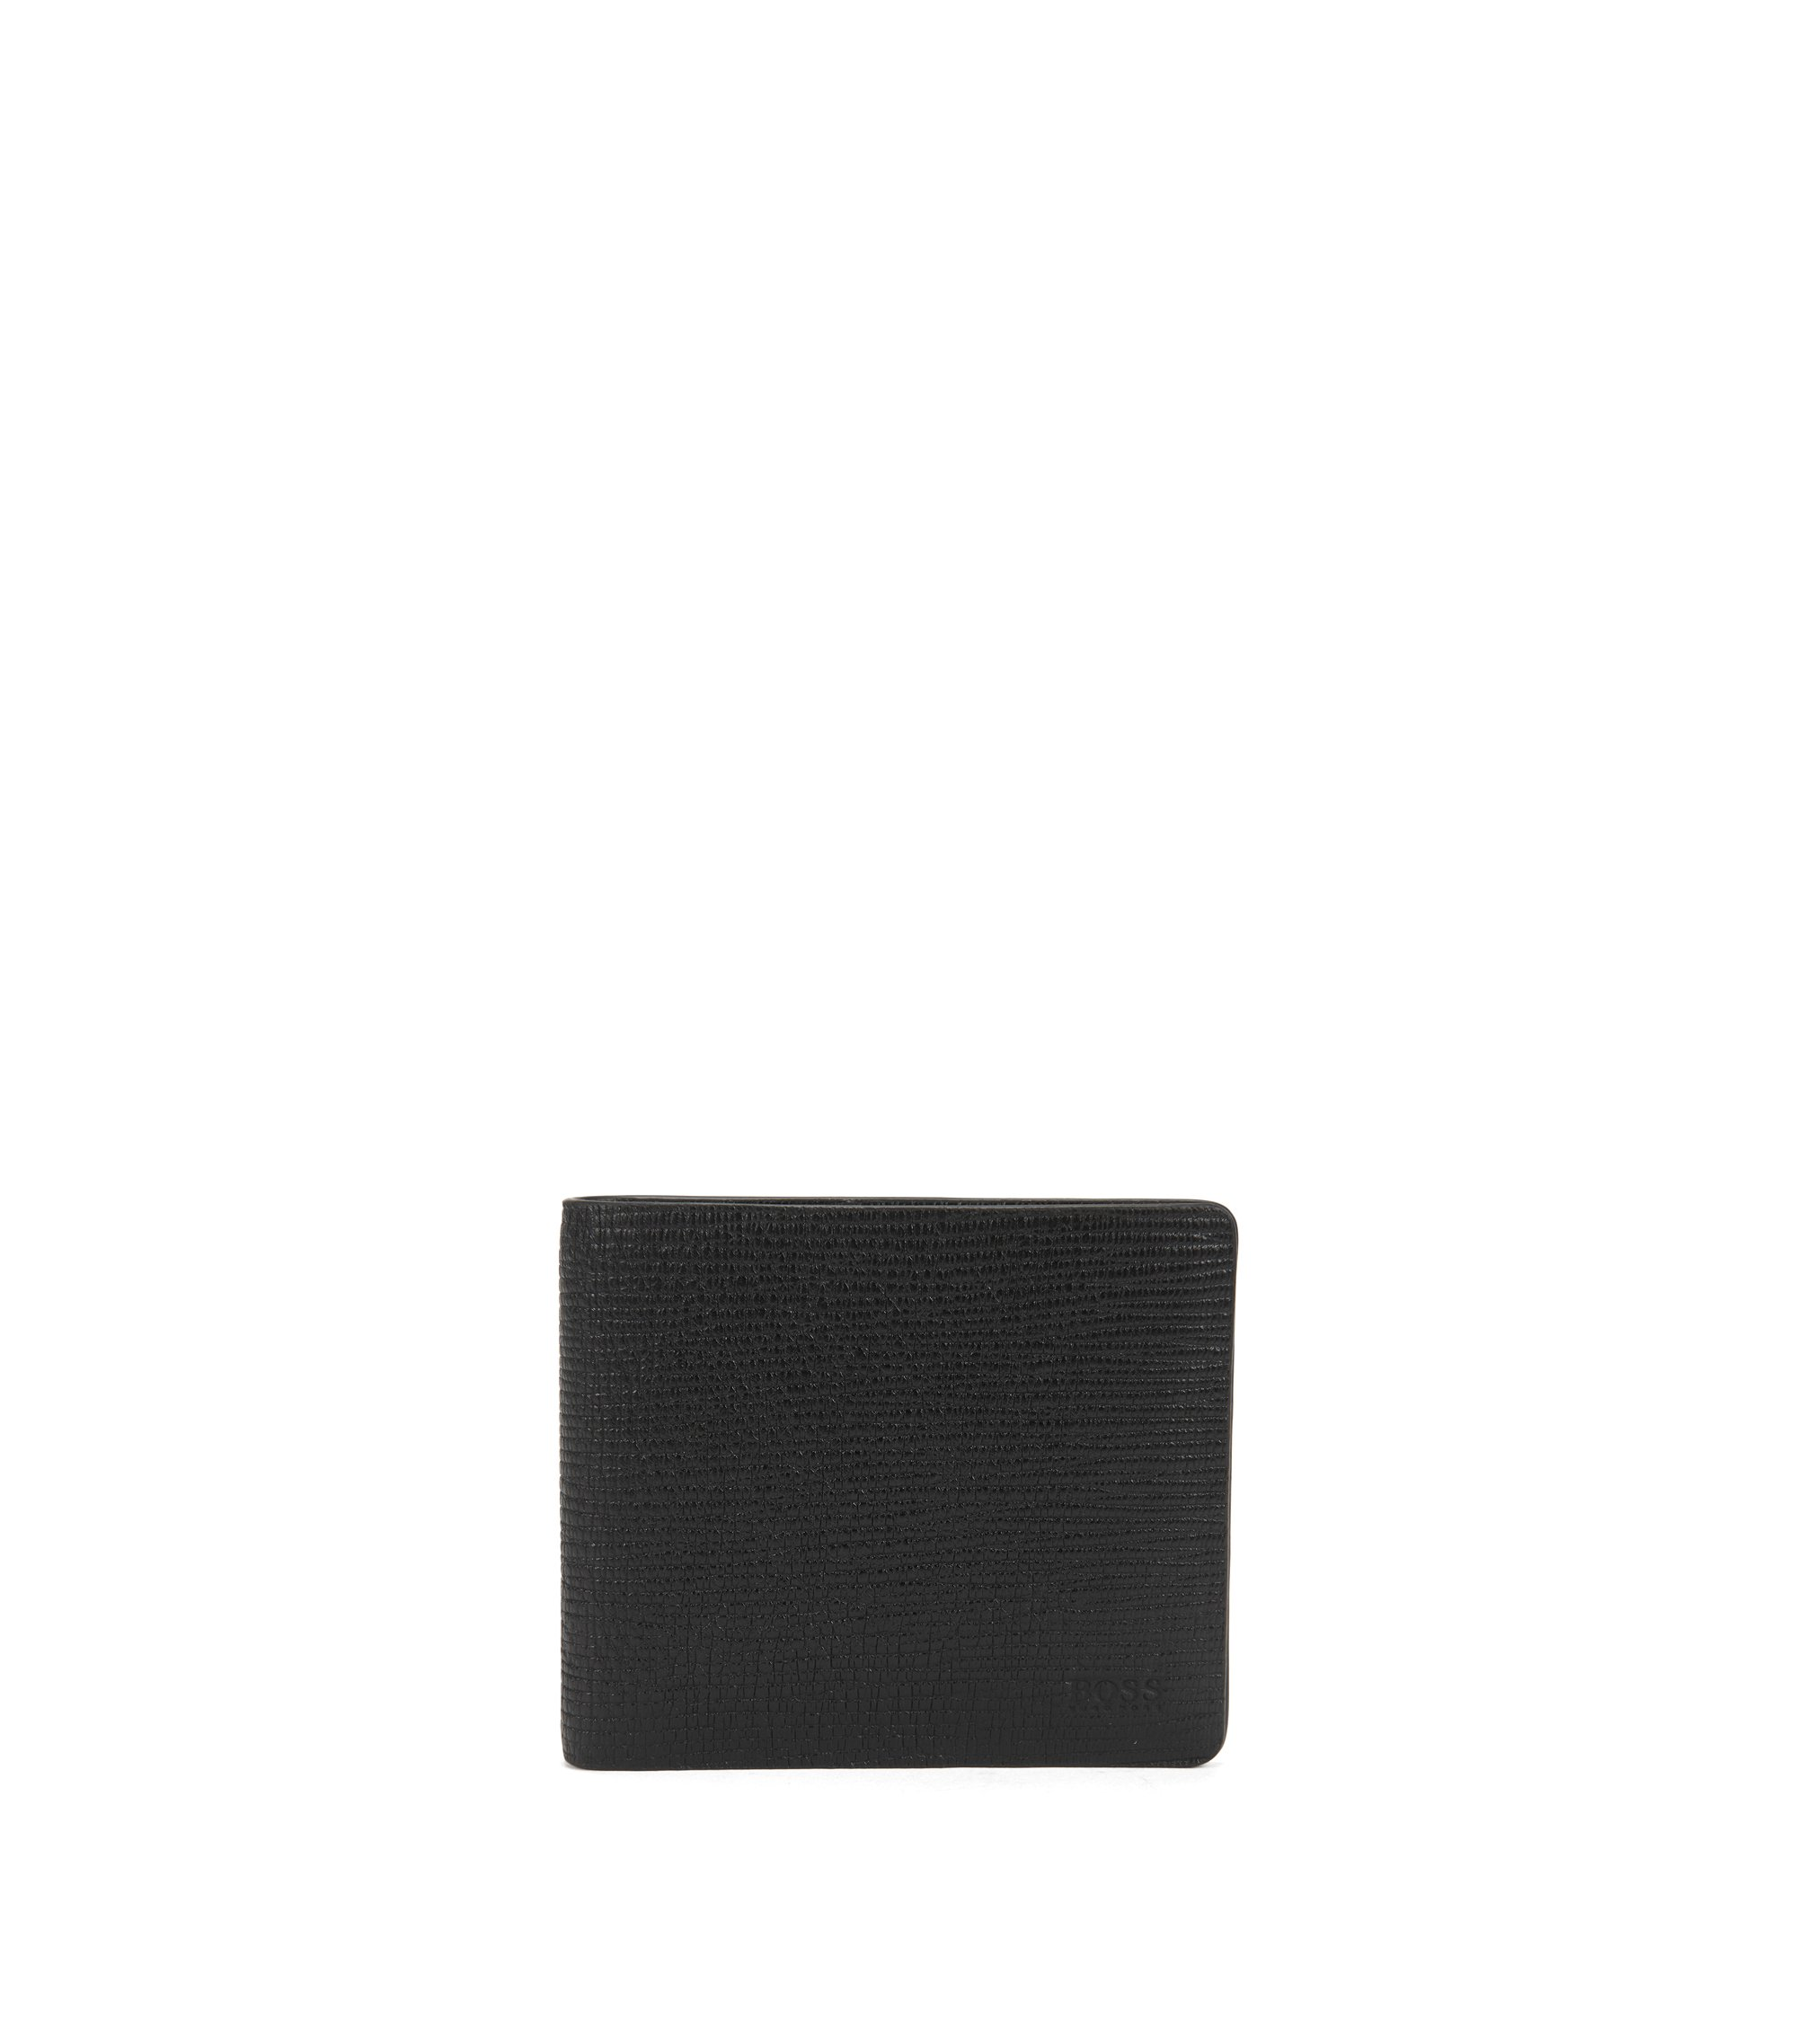 Billfold wallet in soft printed leather, Black